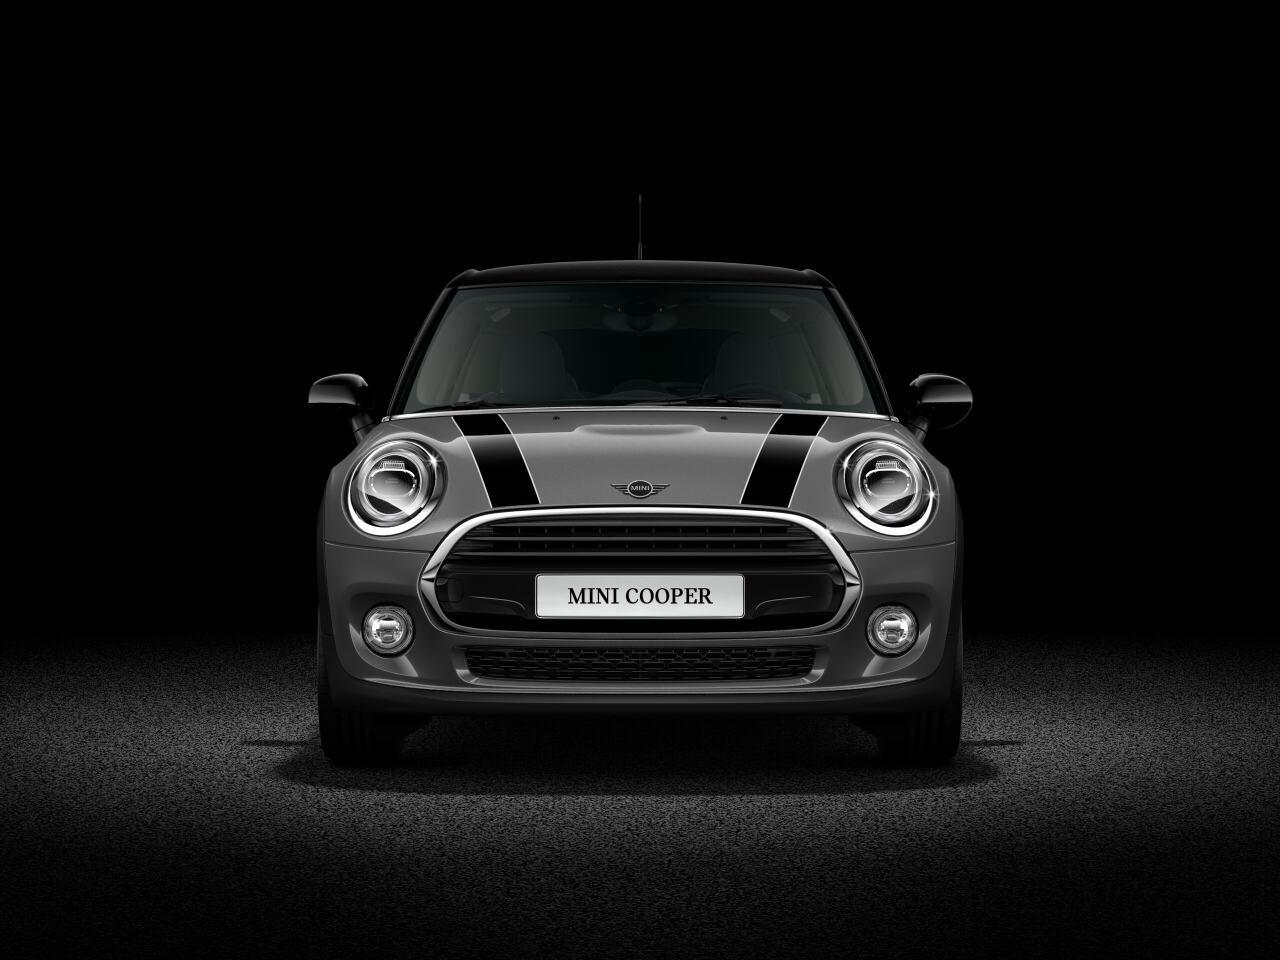 MINI Cooper Hatch 5 Door front profile